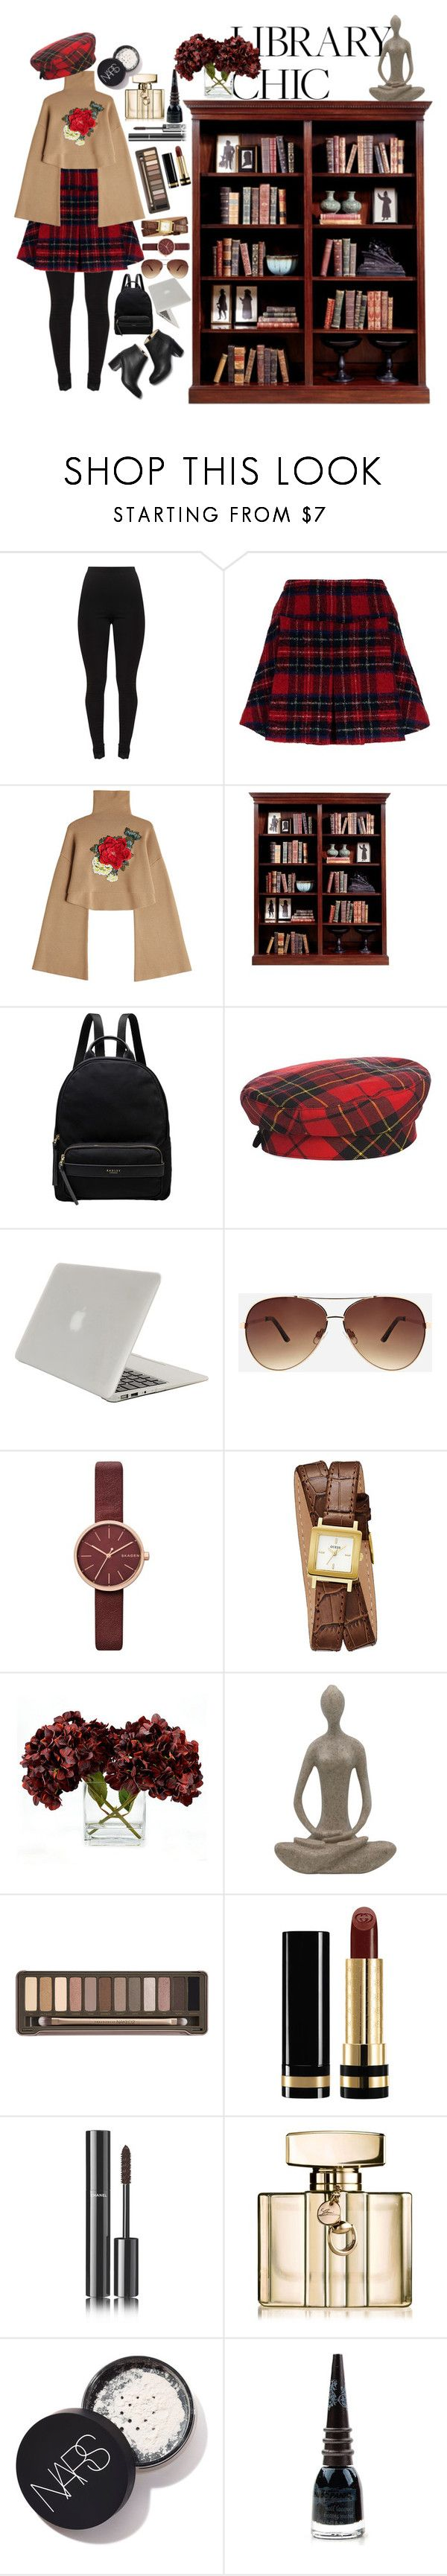 """""""Classic is Chic"""" by luthfia-fsani on Polyvore featuring Pinko, William Fan, Radley, Eric Javits, Tucano, Ashley Stewart, Skagen, GUESS, Frontgate and Urban Decay"""